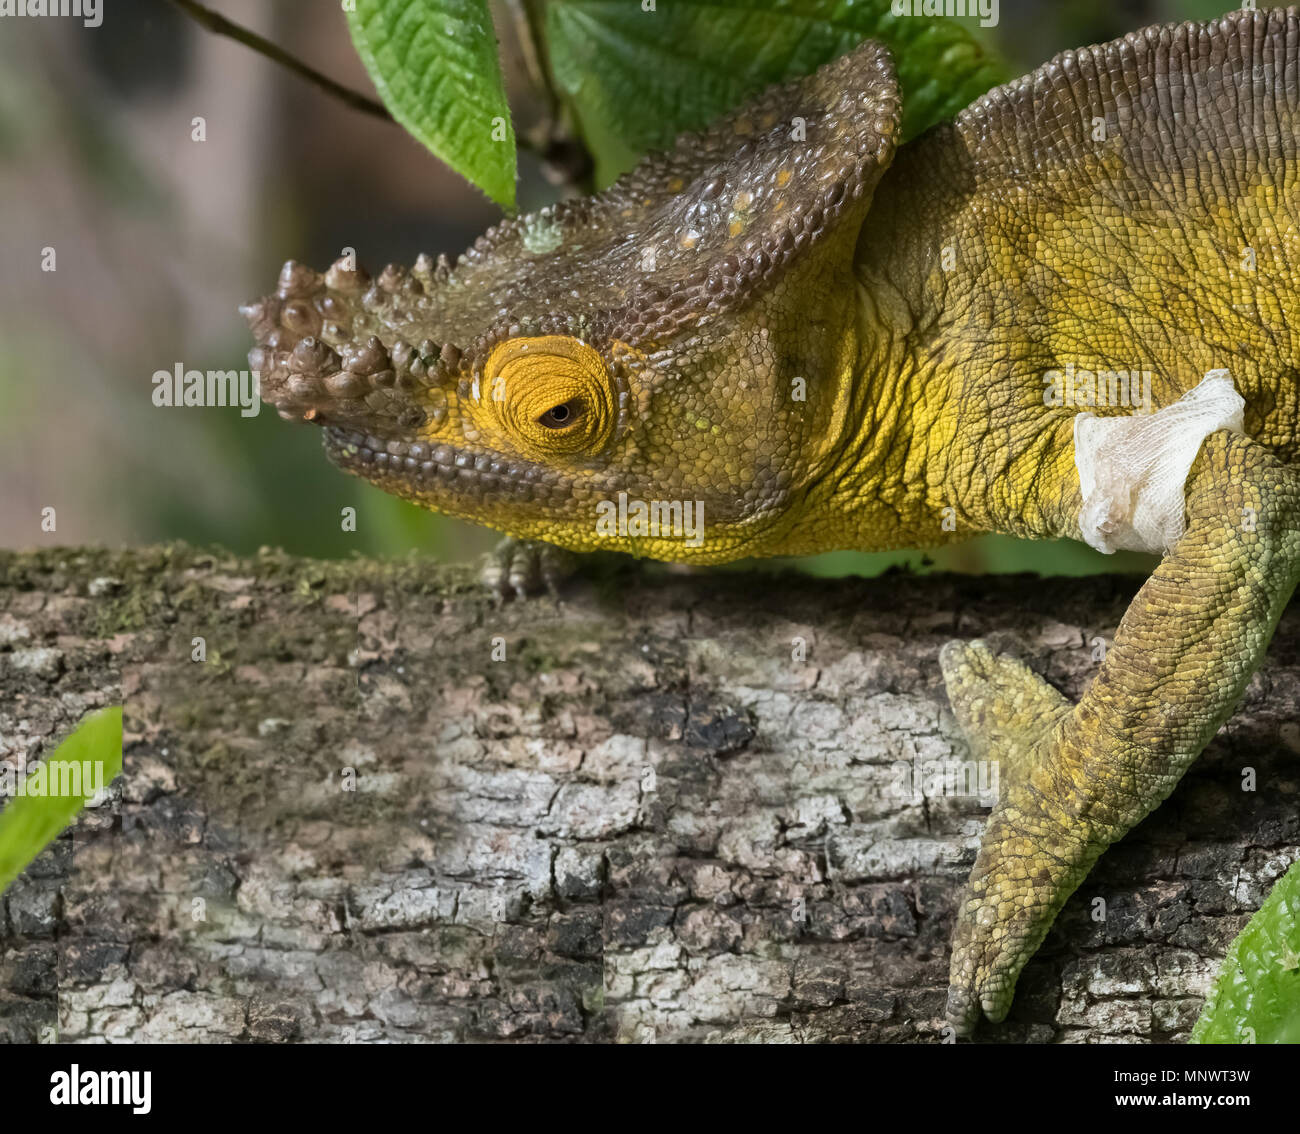 Chameleon in the primeval forests of the Andasibe National Park, Eastern Madagascar - Stock Image